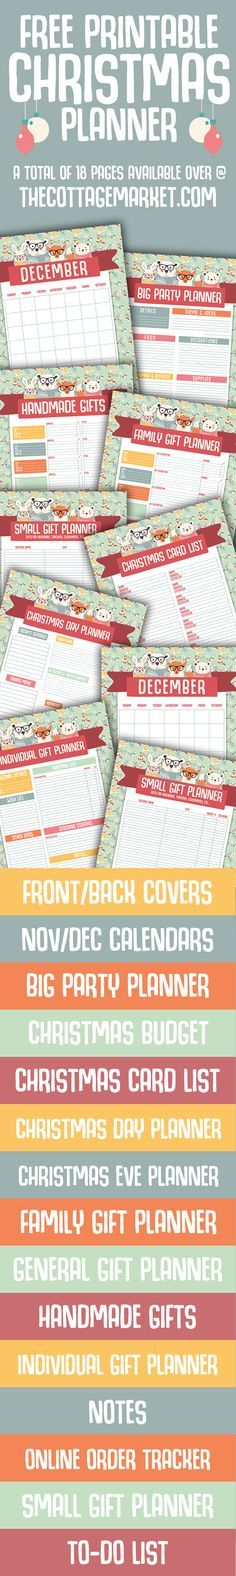 Free Holiday Planner! 18 Pages of Organization to help you through the busy time! YES...it's FREE!!!